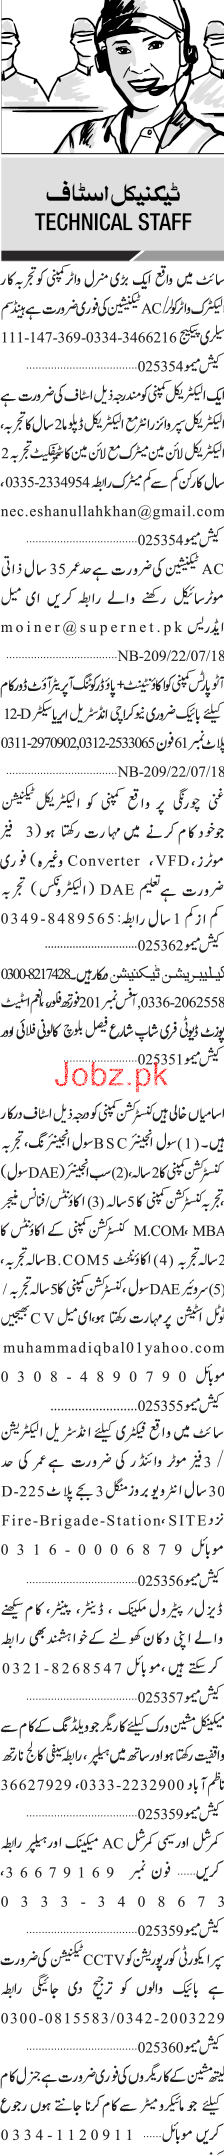 AC Technicians, Electrical Diploma Holders Job Opportunity